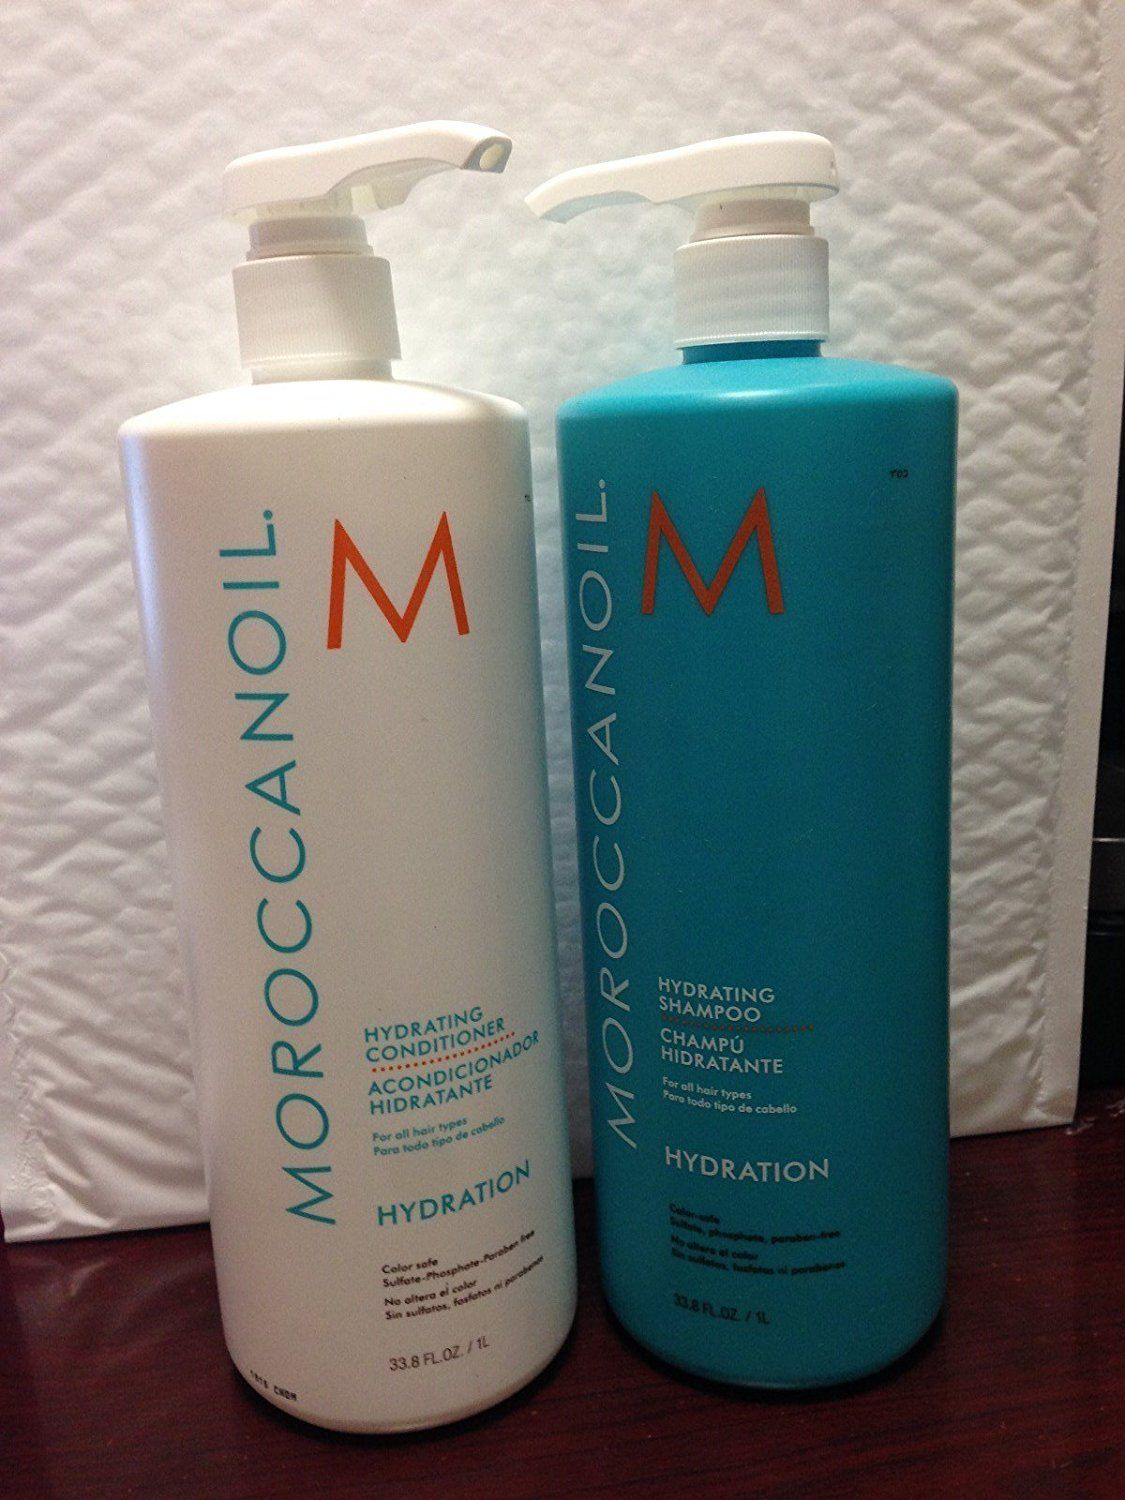 Moroccanoil Hydrating Shampoo and Conditioner 1 Liter